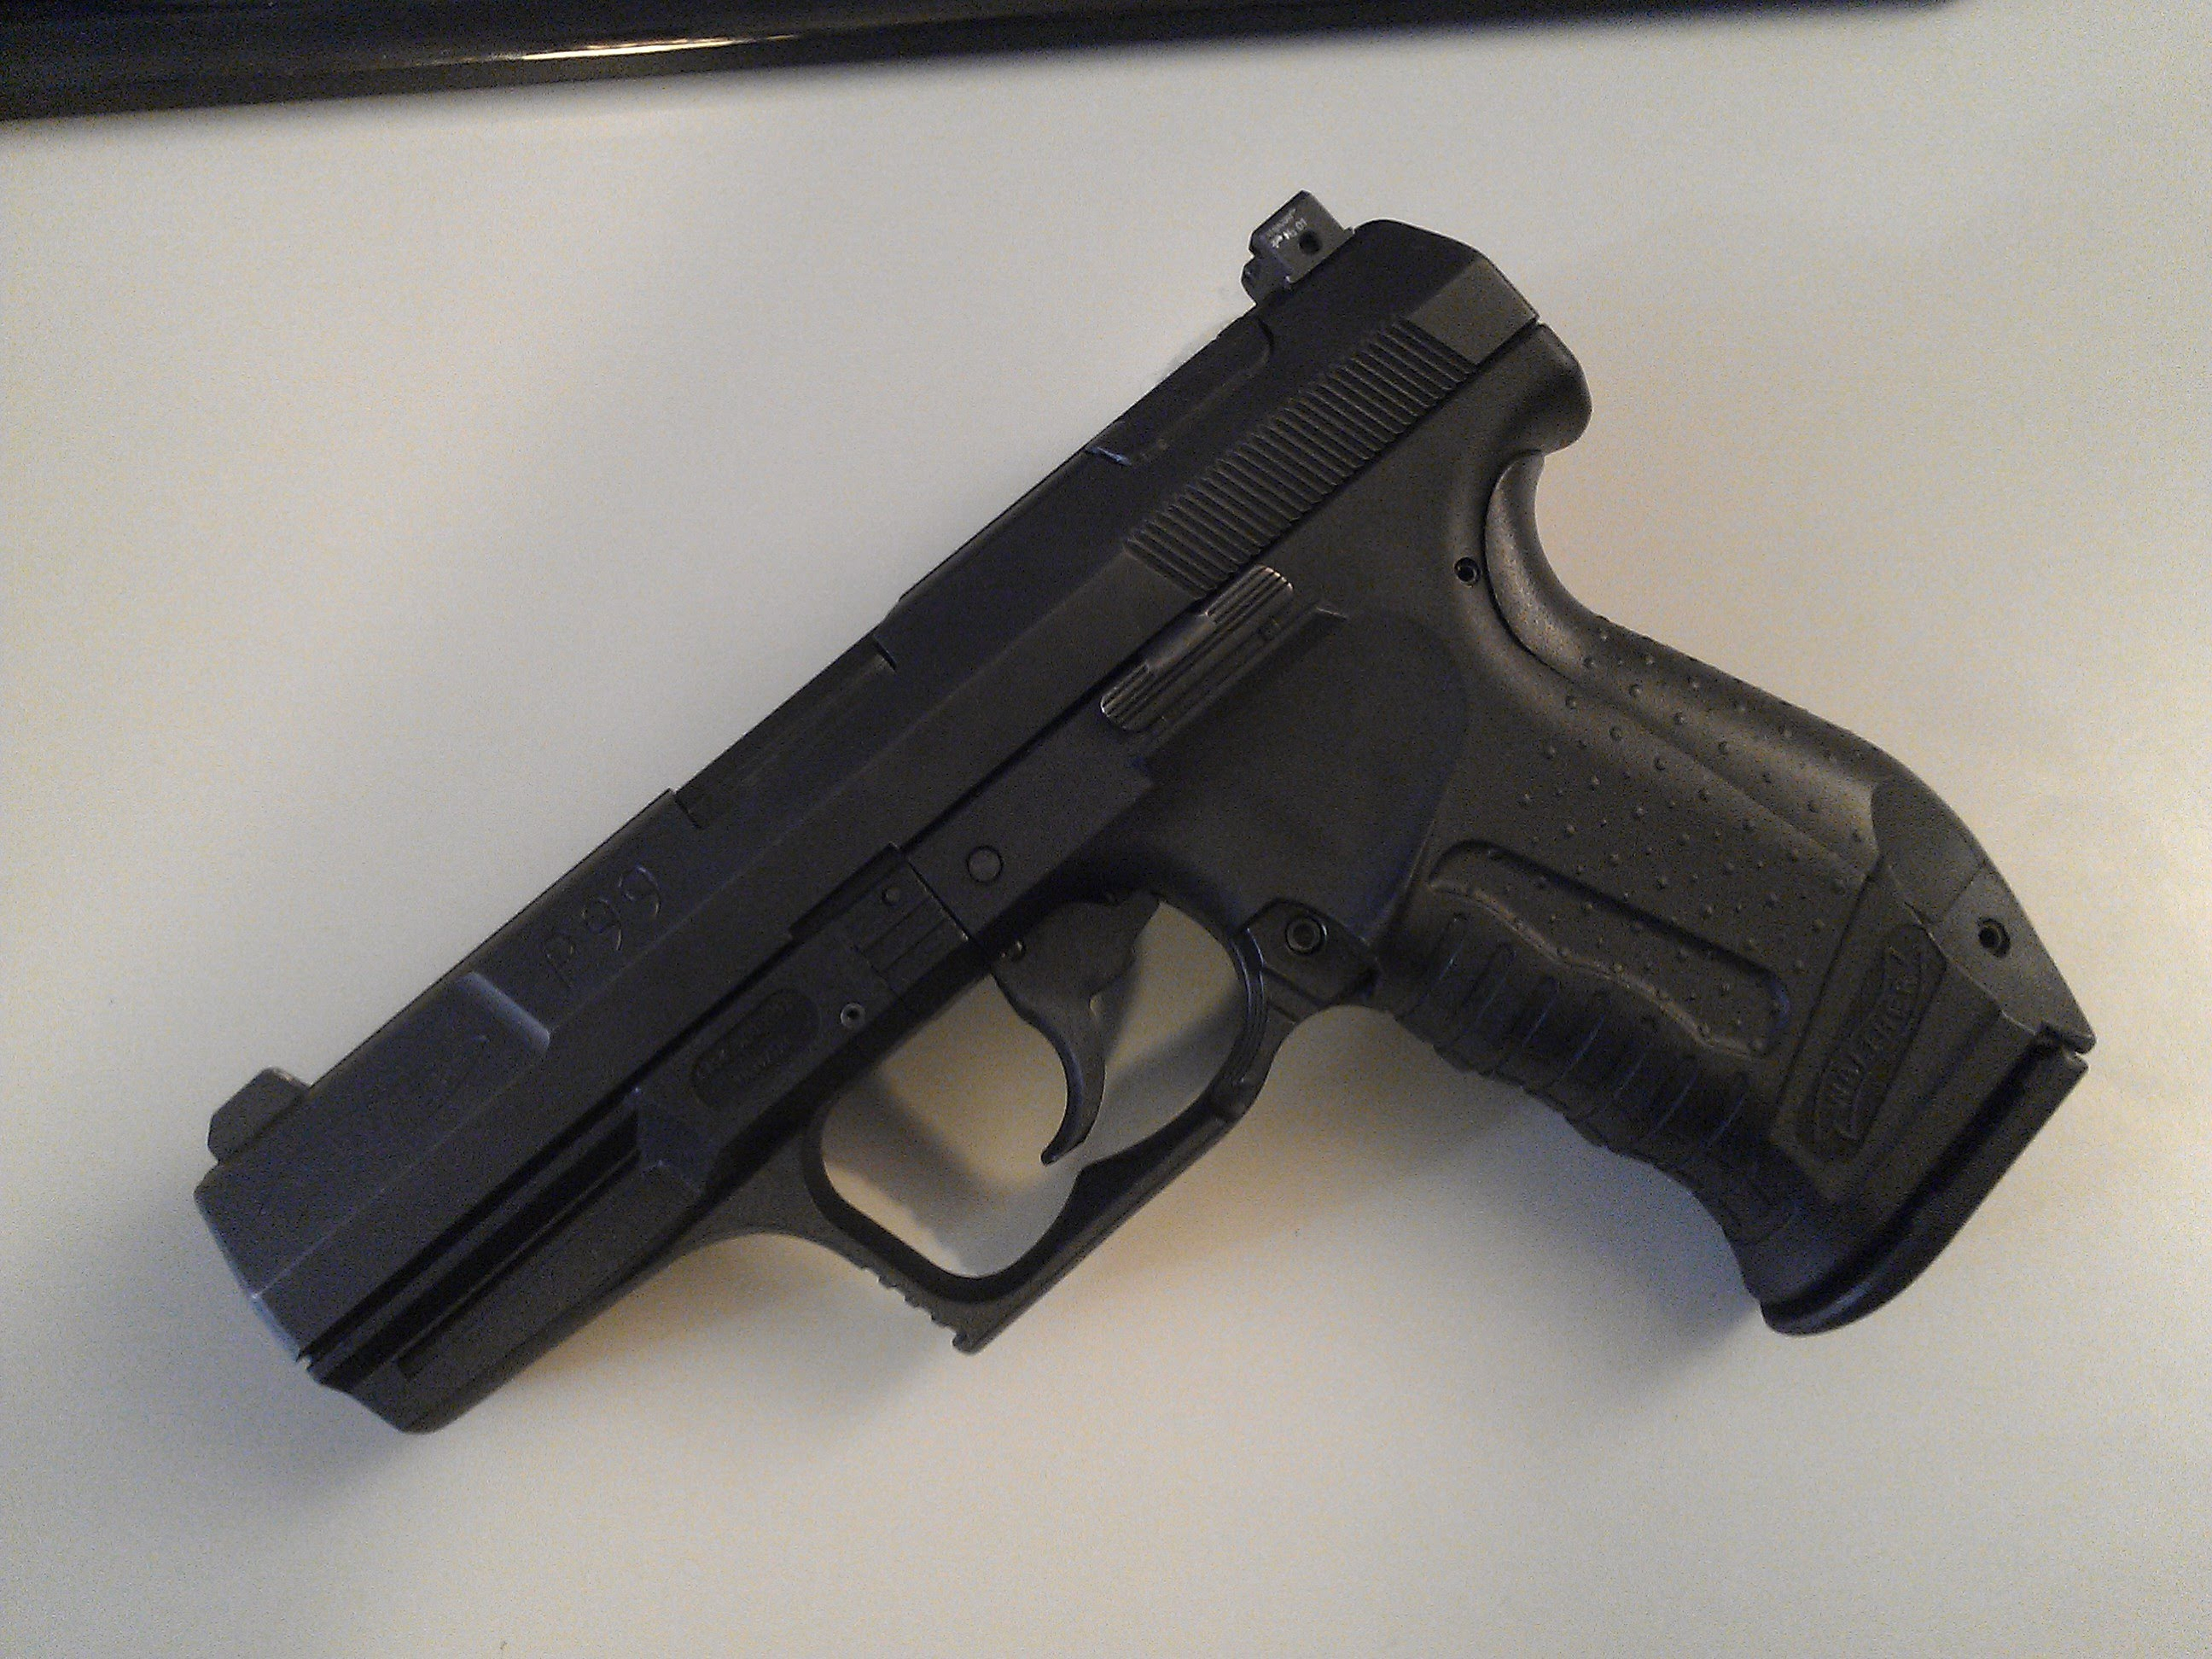 Walther P99 As Hd Wallpaper 2592x1944